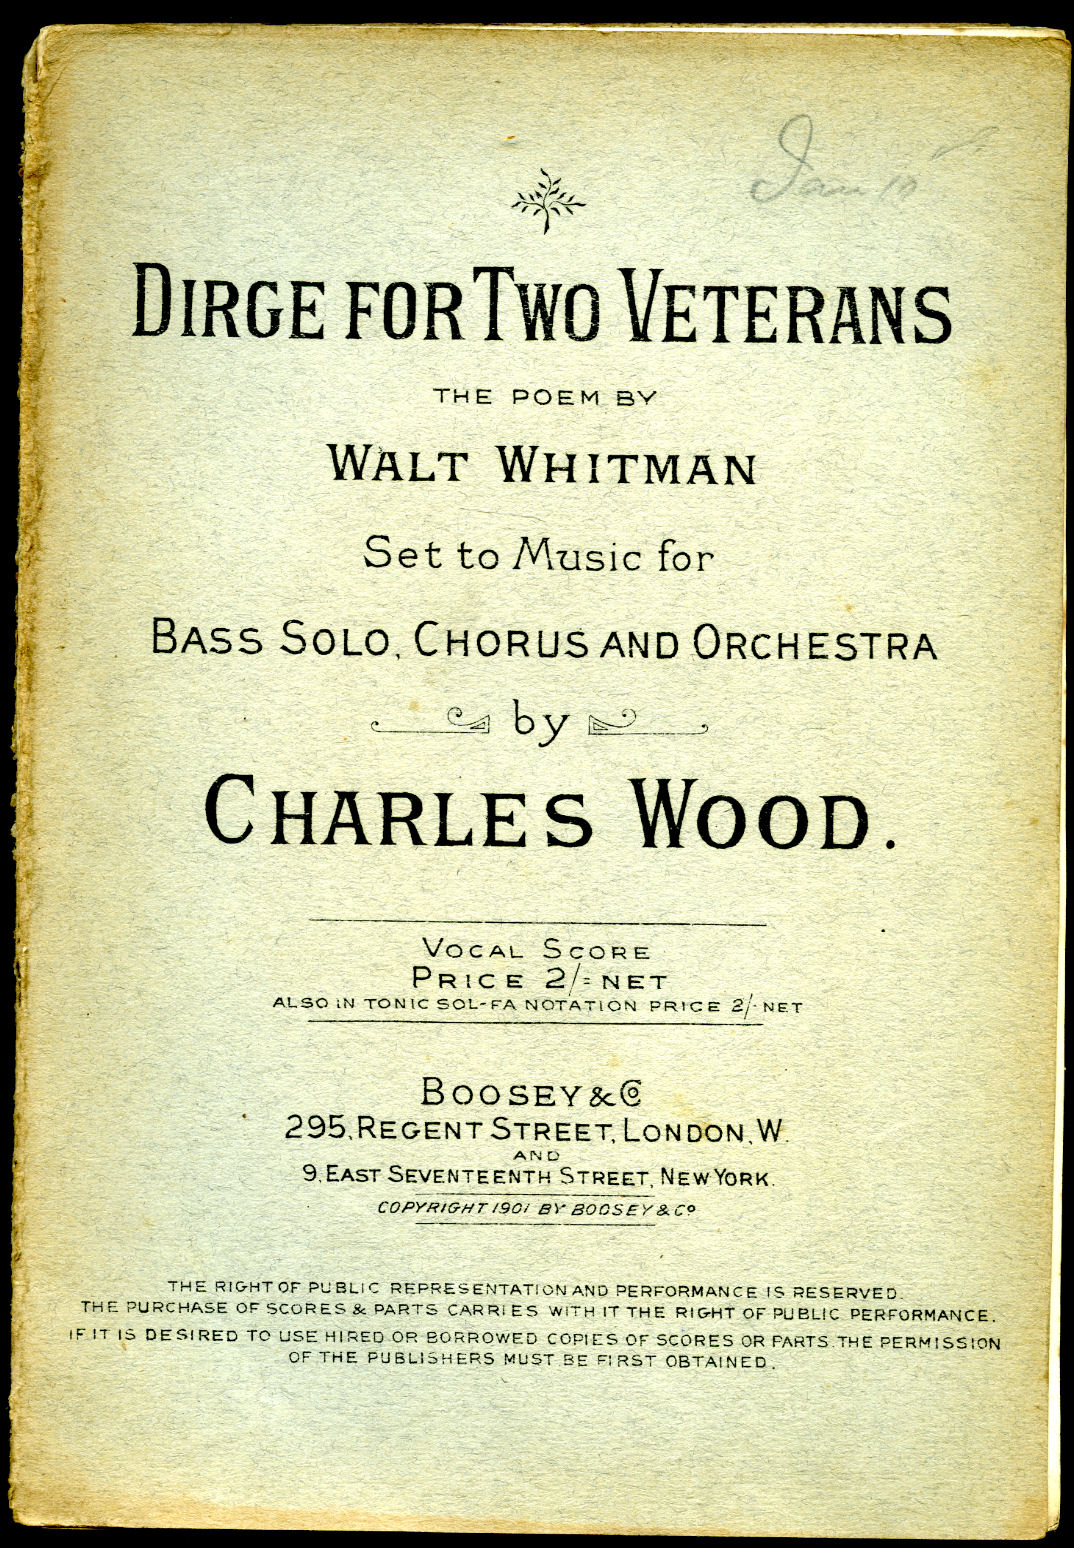 WOOD, CHARLES (1866-1926) WALT WHITMAN (1819-1892) - Dirge for Two Veterans | The Poem by Walt Whitman | Set to Music for Bass Solo, Chorus and Orchestra. Vocal Score